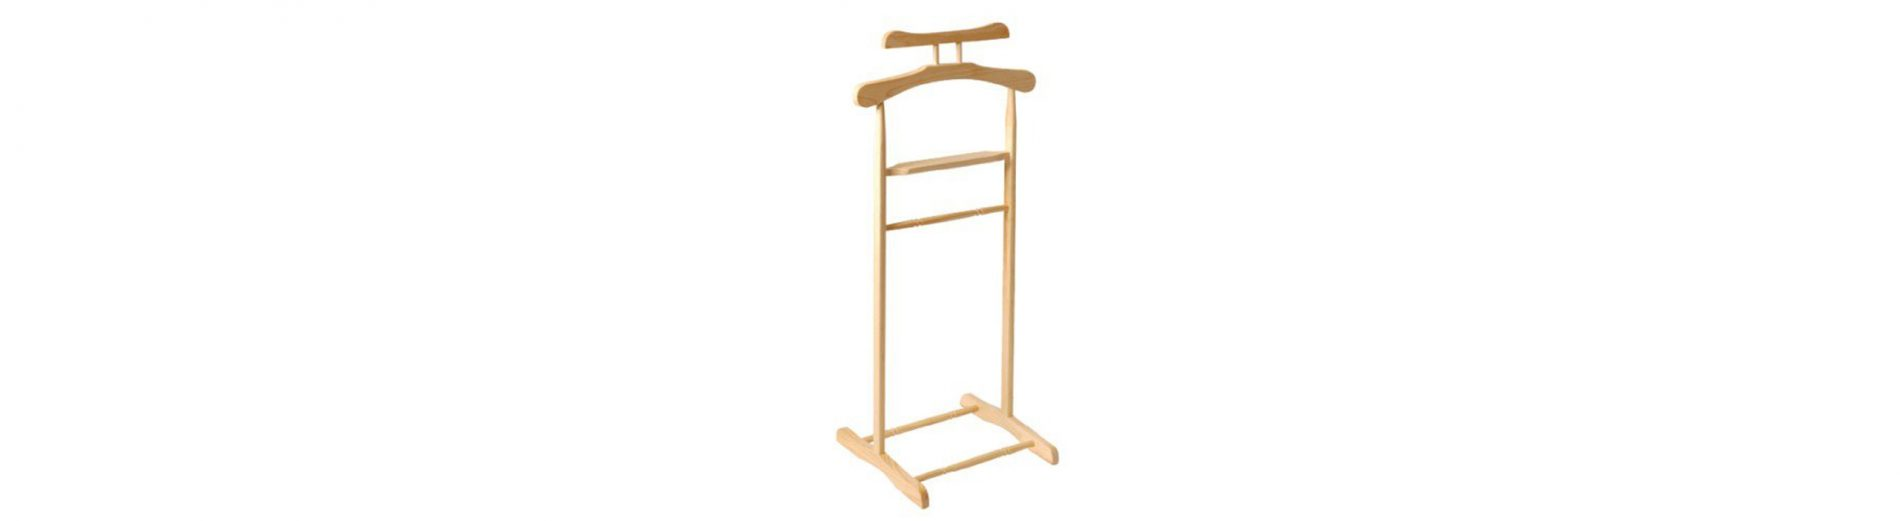 Valet Stands Stand Ready To Serve You